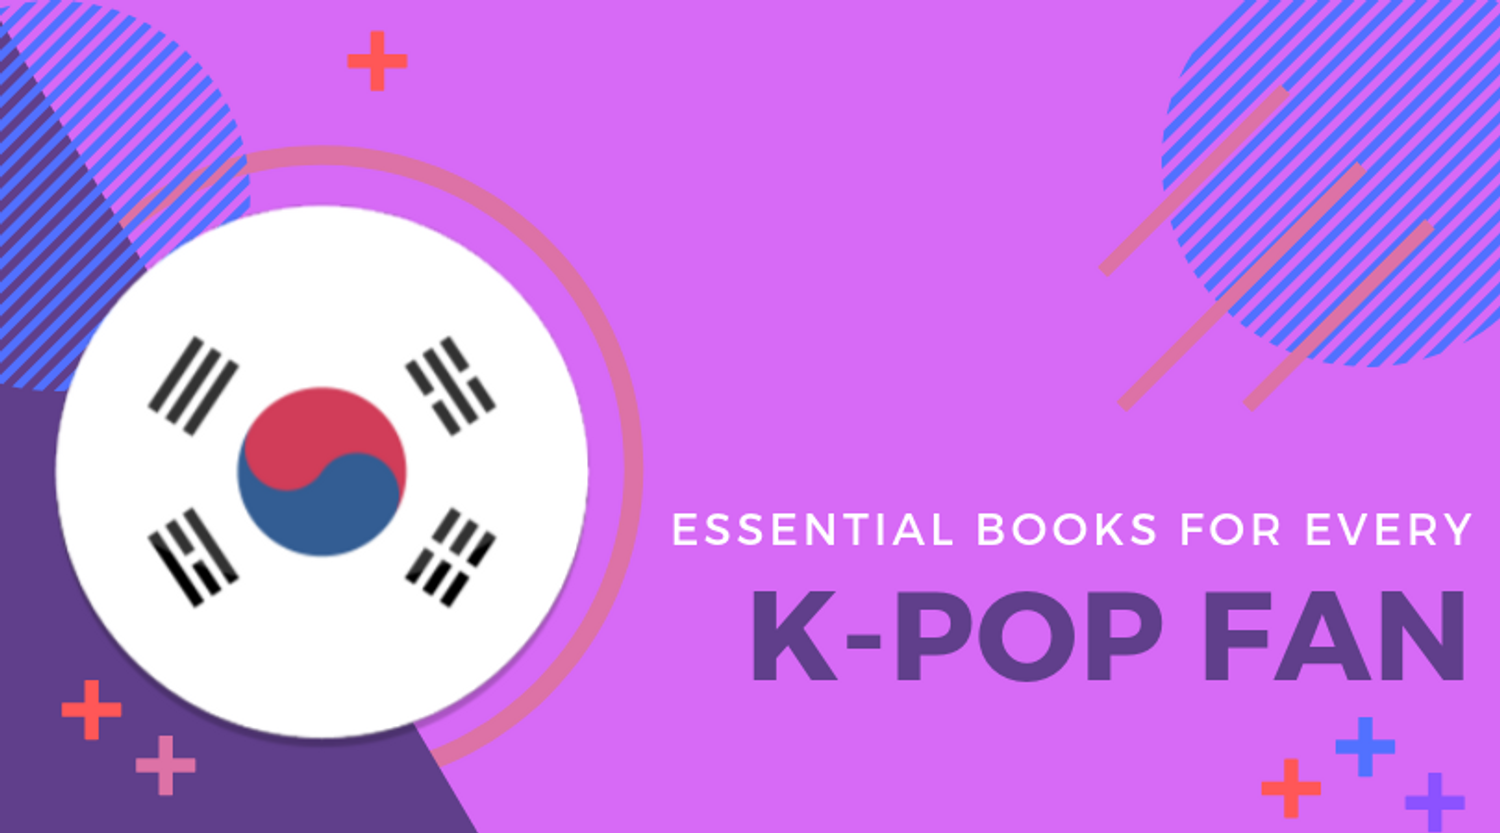 Essential Books for Every K-Pop Fan